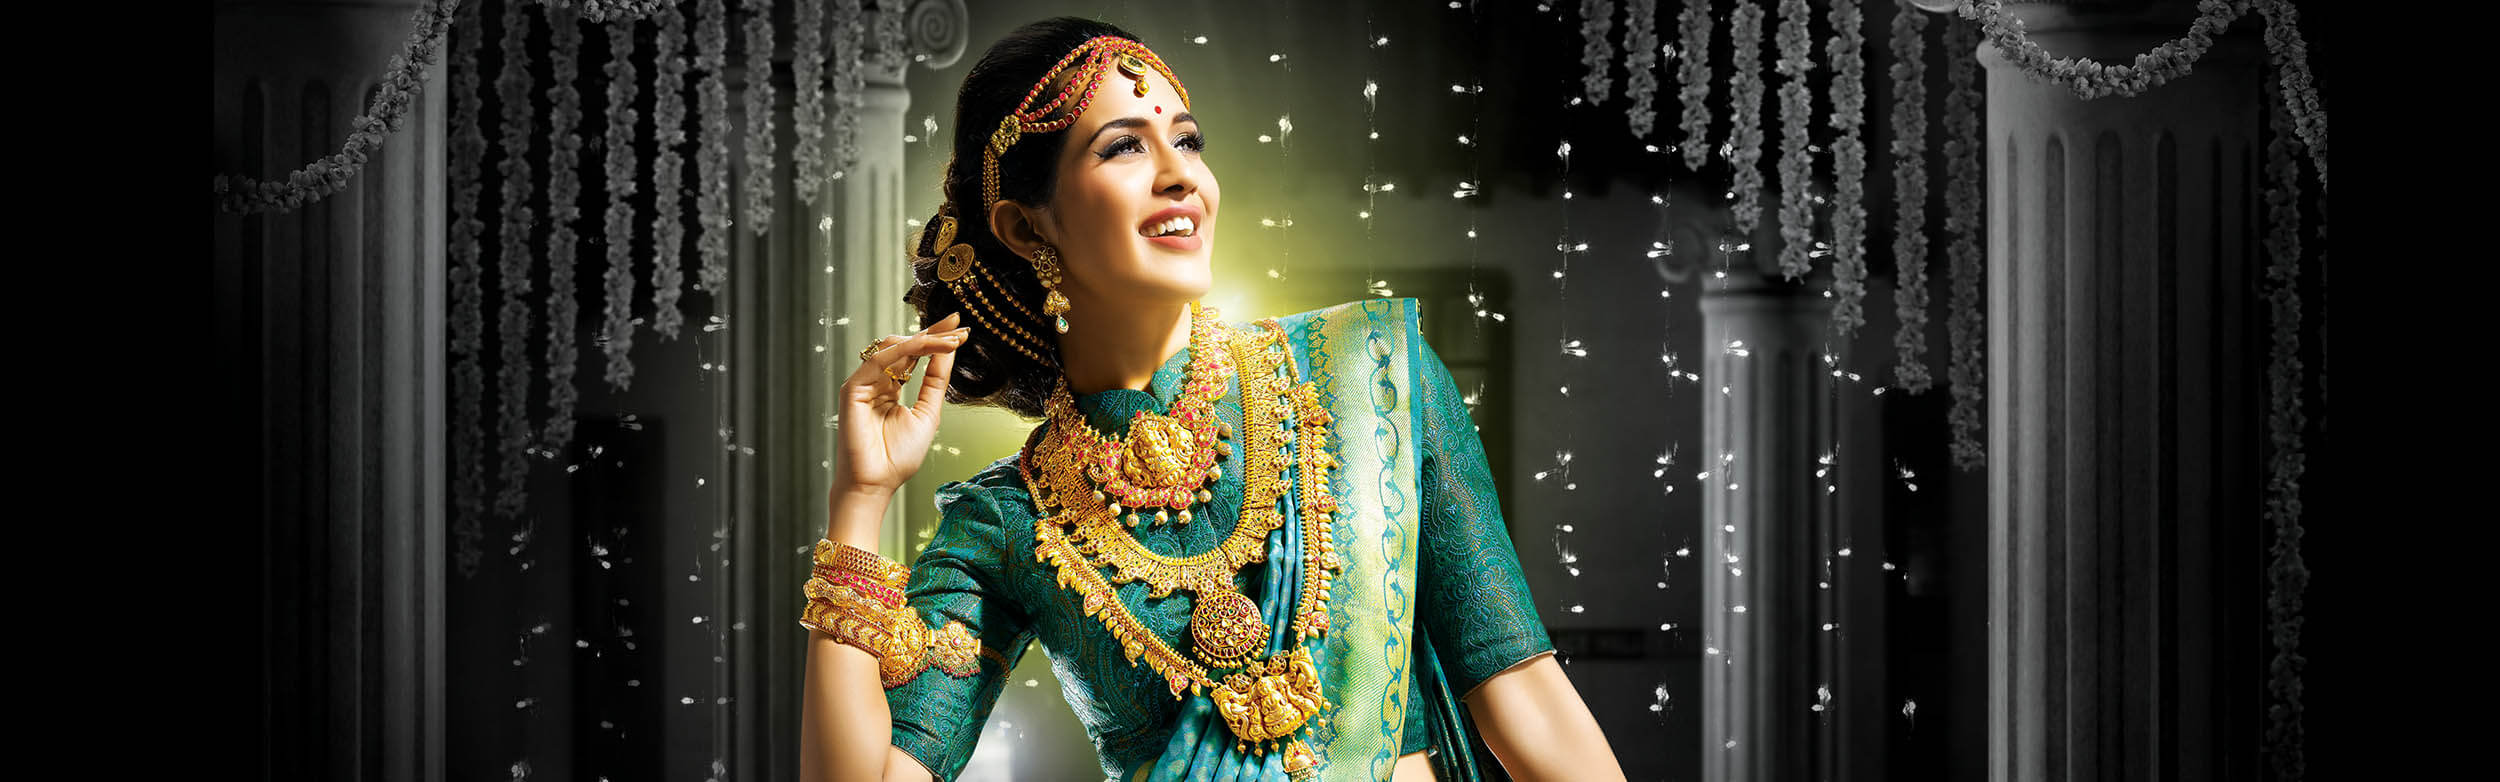 12 Best Jewellery Stores In Bangalore To Buy Your Wedding Jewellery